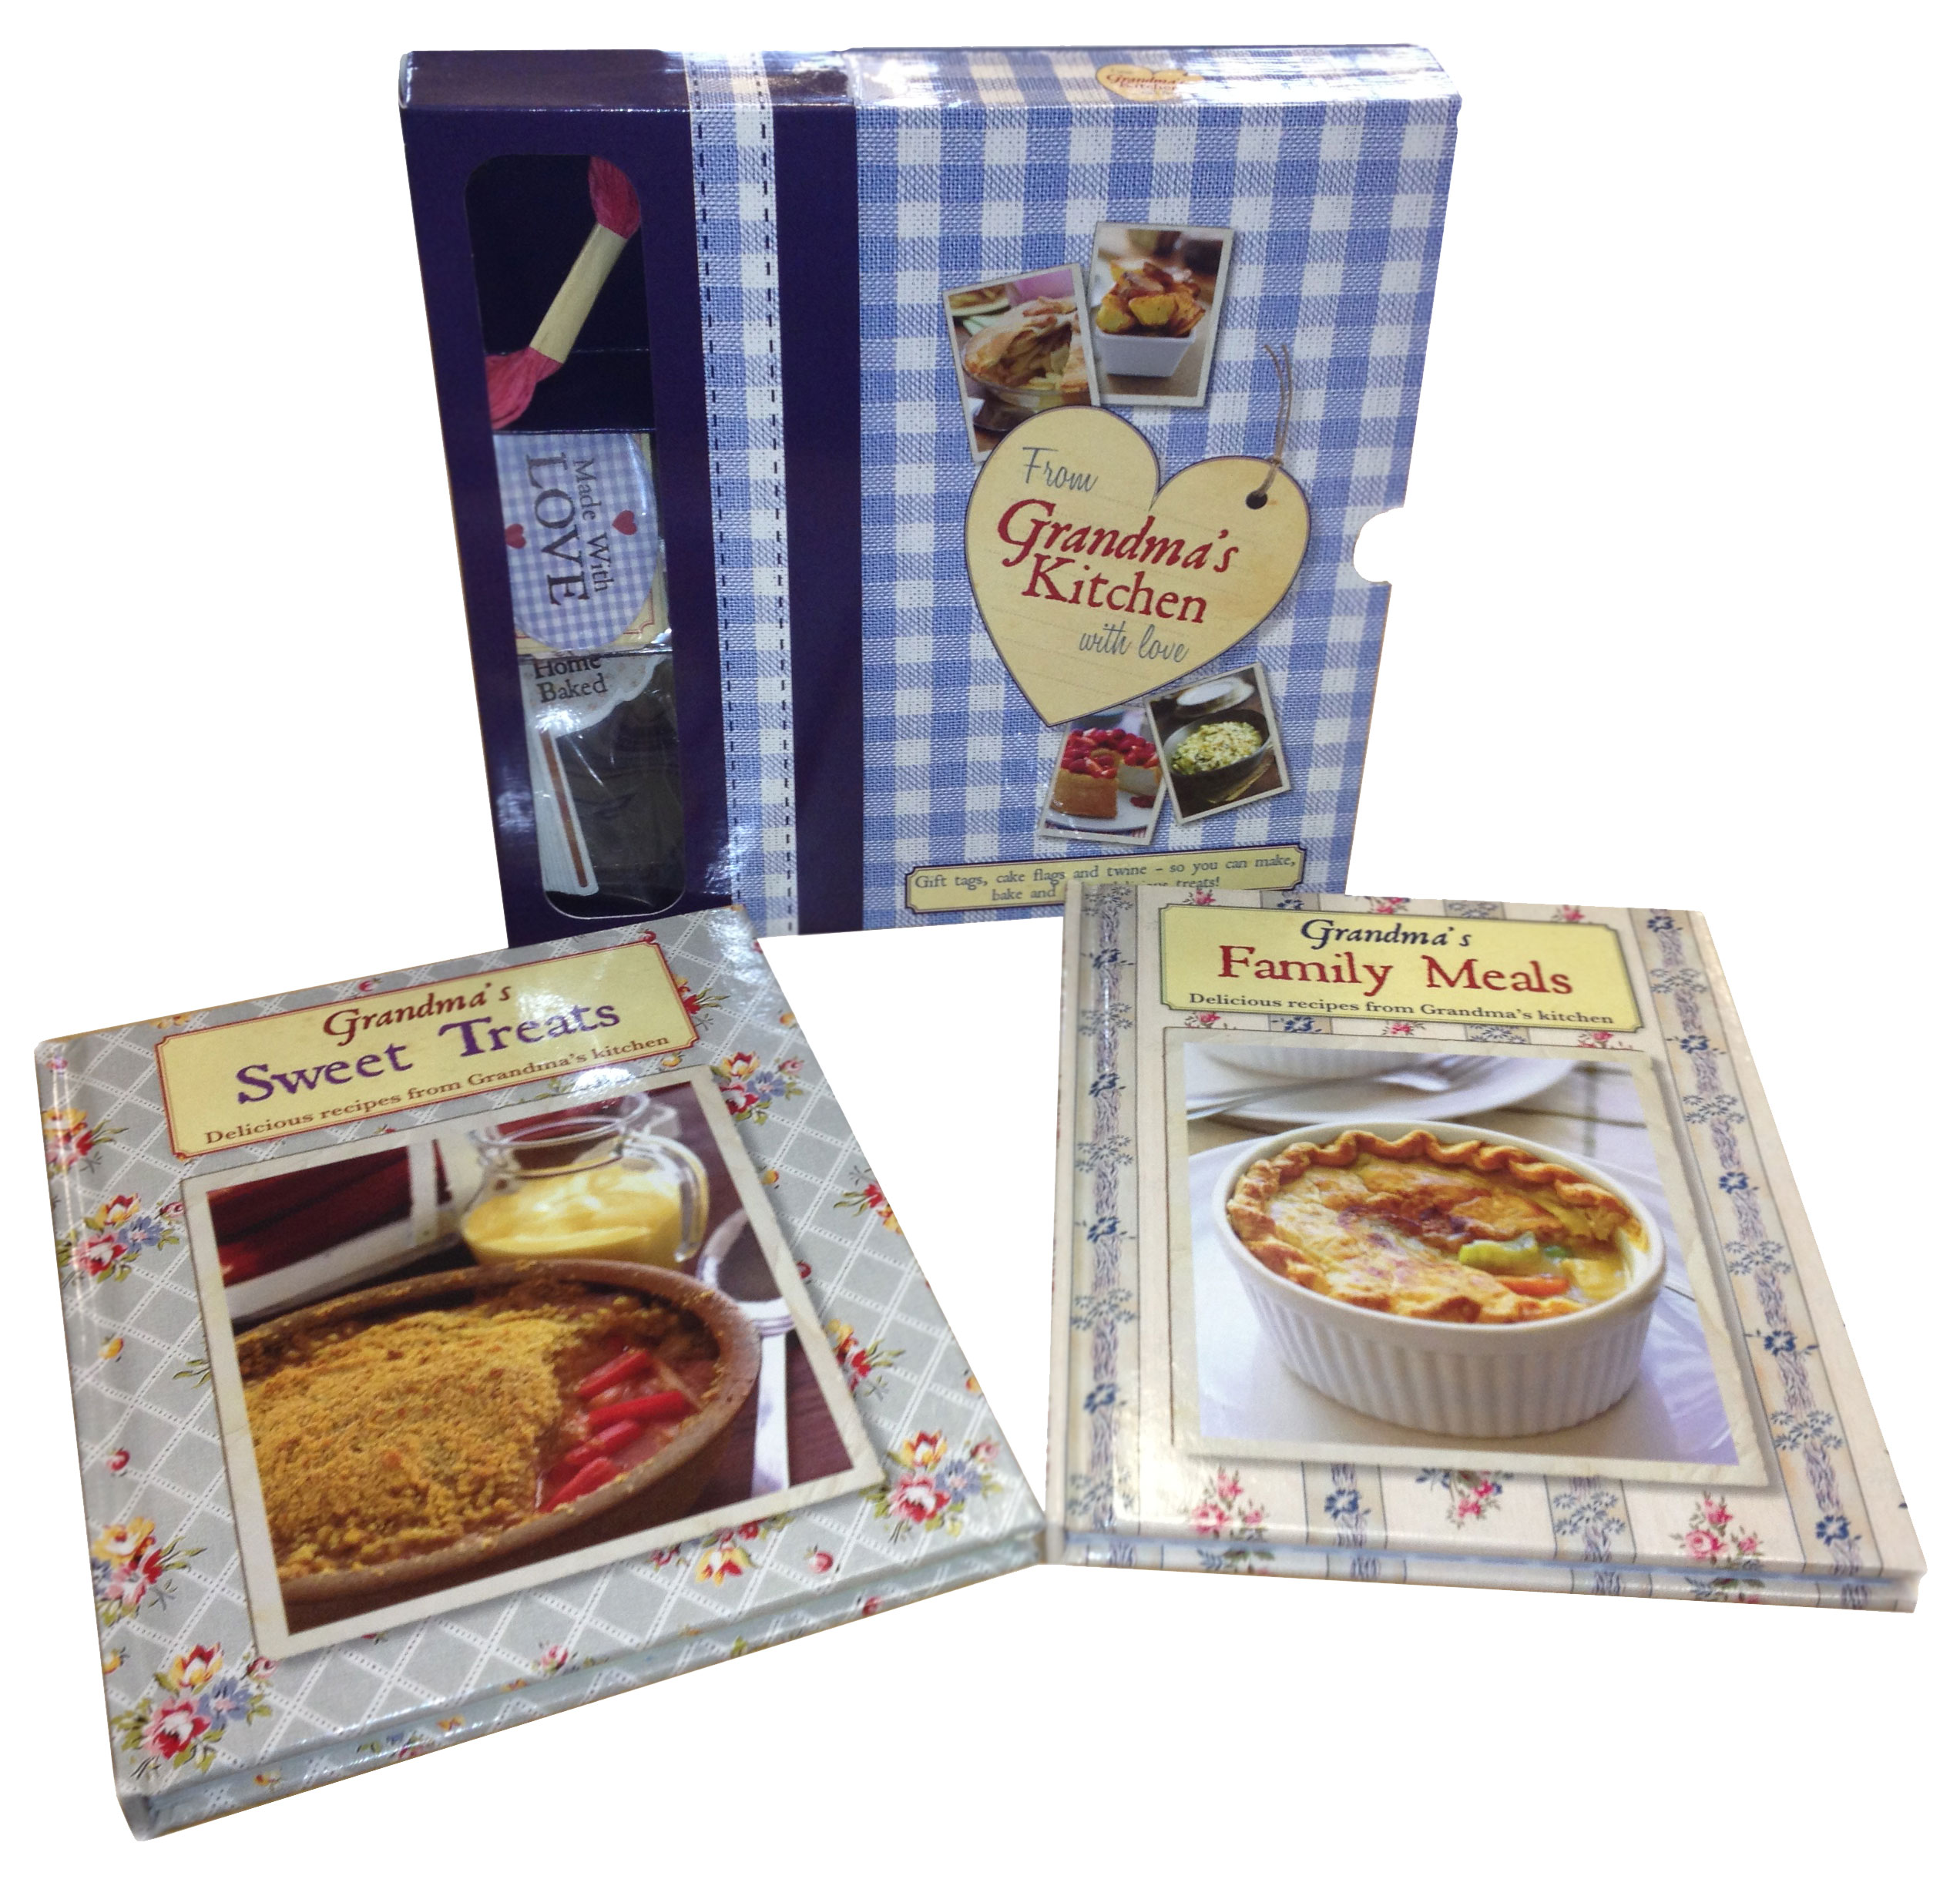 Grandmothers Kitchen: From Grandma's Kitchen With Love Slipcase 2 Book Set